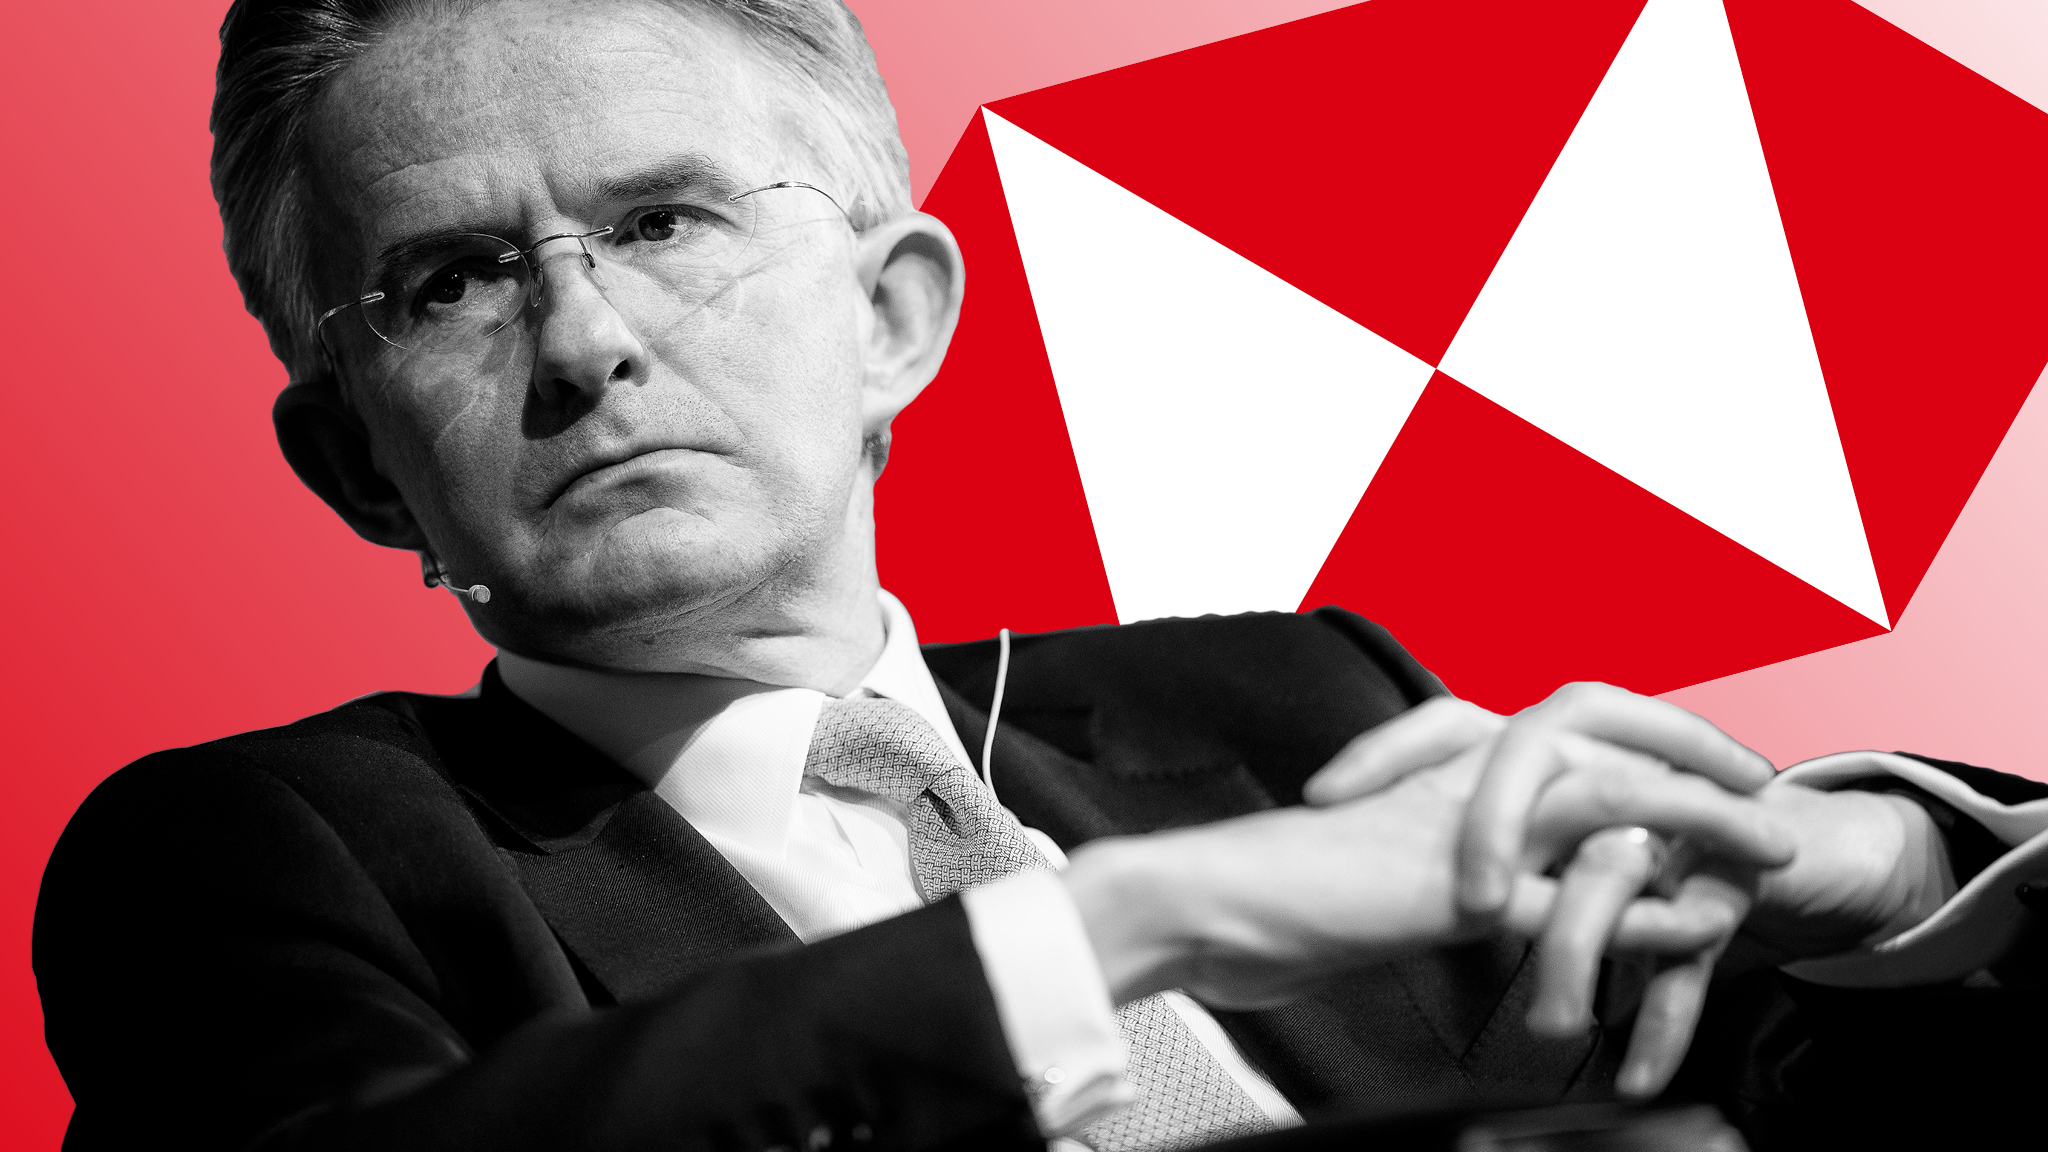 Flint prepares new strategy as HSBC puts troubled years